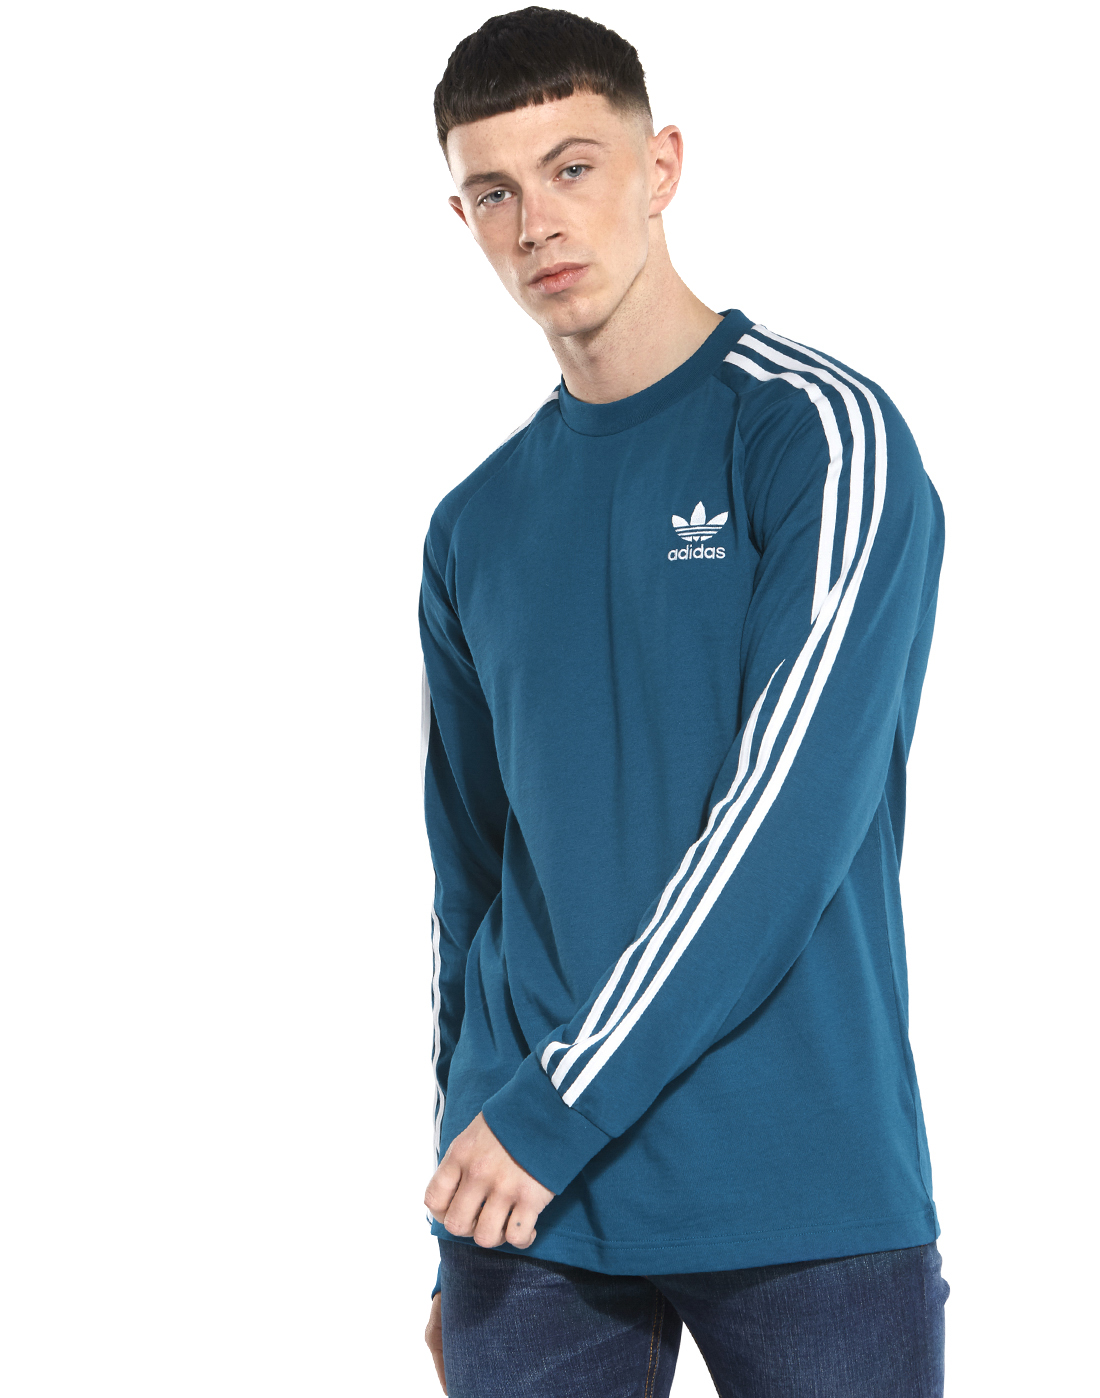 0977a13f1 Men's Navy Long Sleeve adidas Originals T-Shirt | Life Style Sports